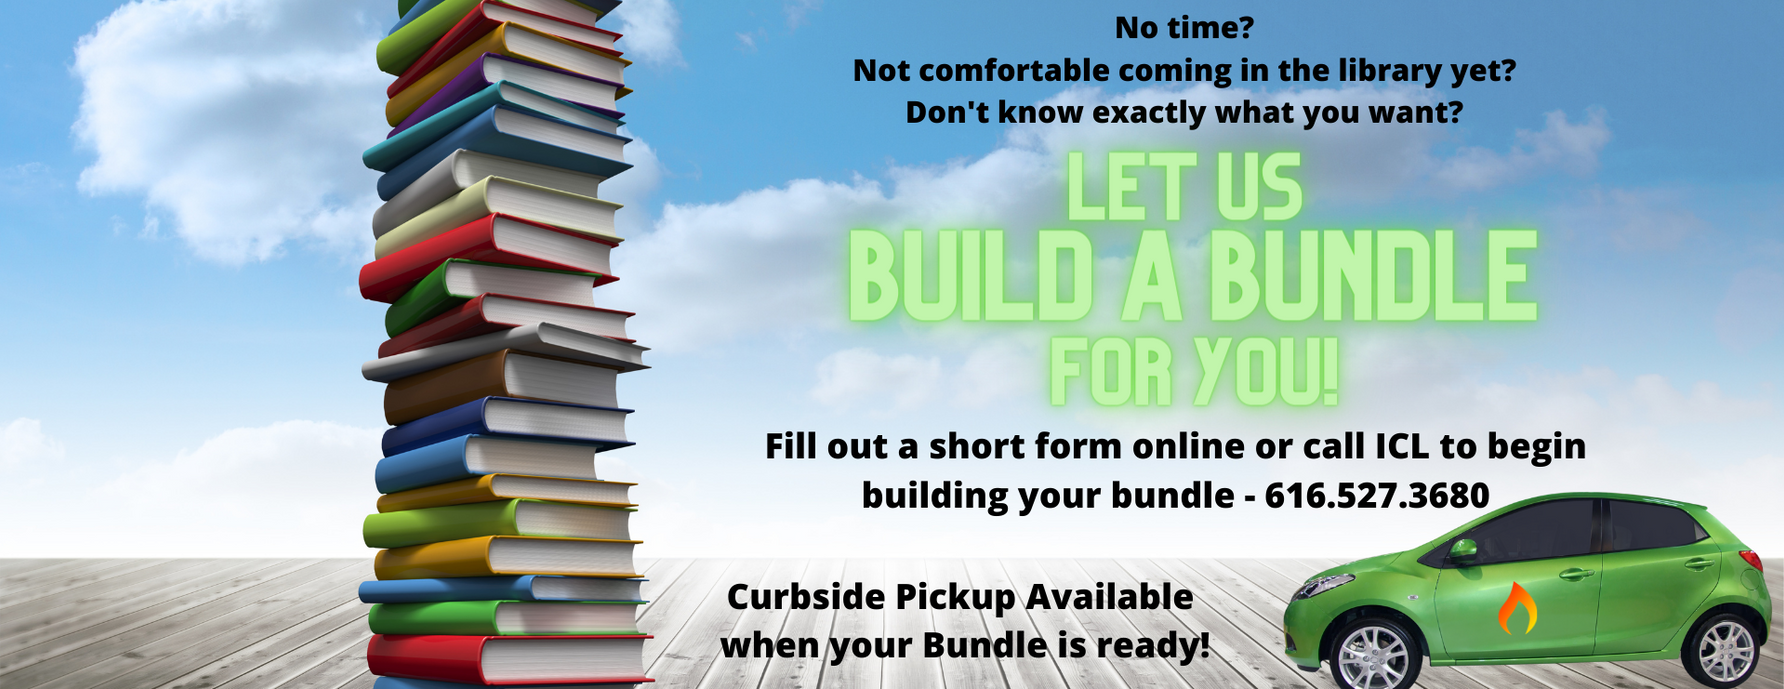 Build a Bundle